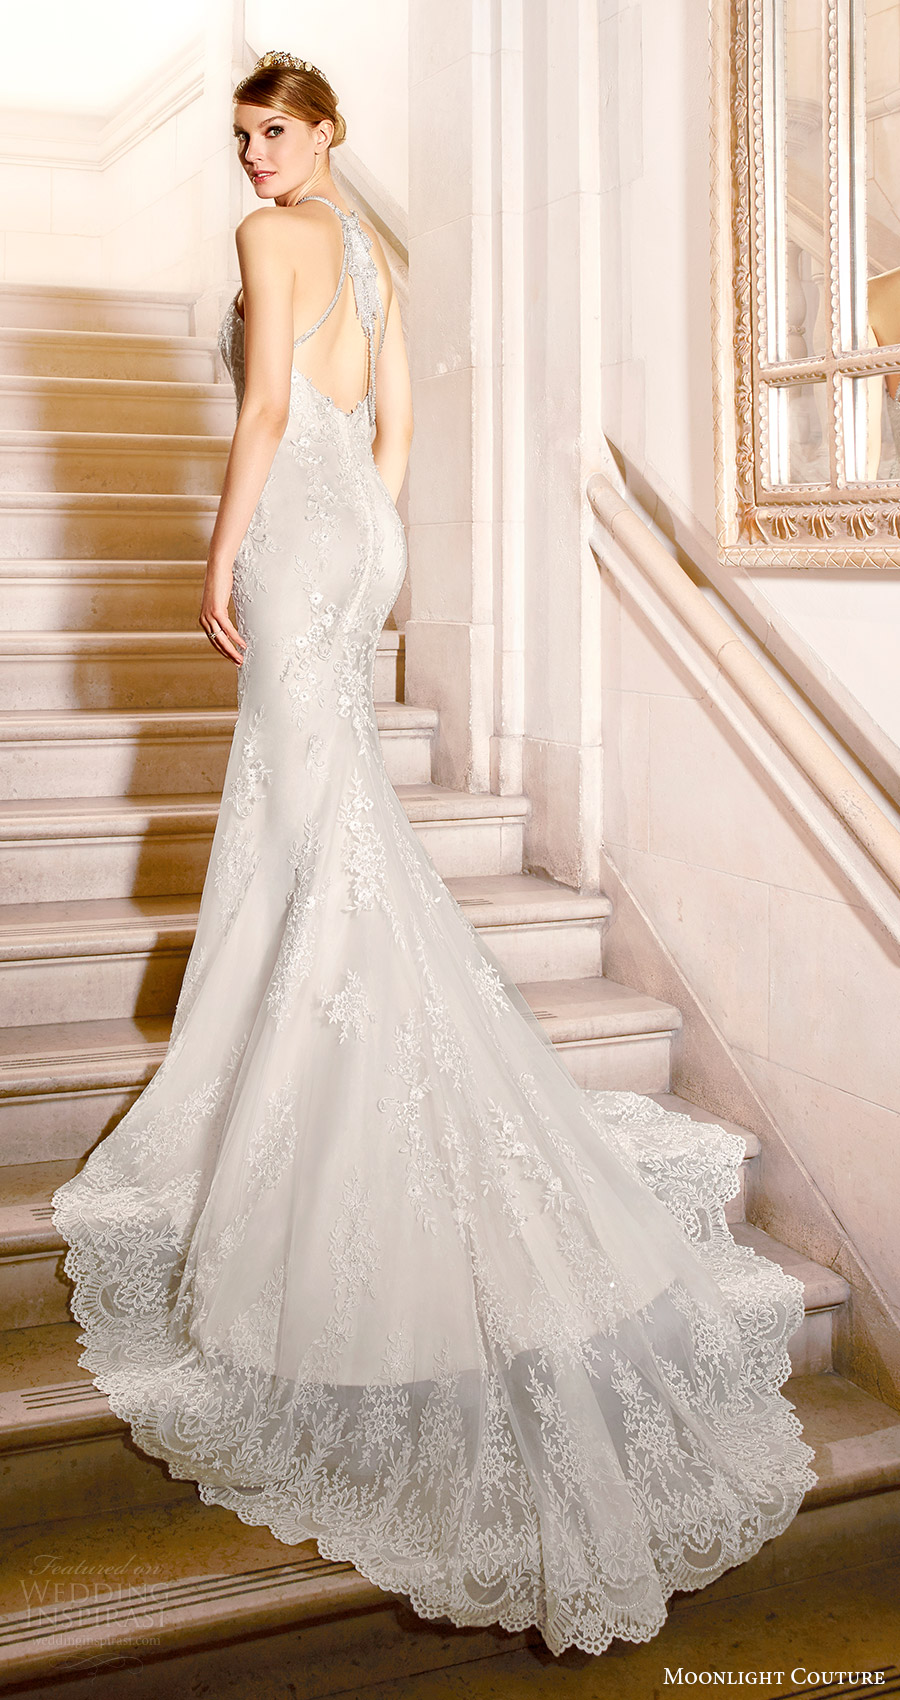 moonlight couture bridal fall 2016 sleeveless beaded halter neck lace mermaid wedding dress (h1317) bv keyhole train